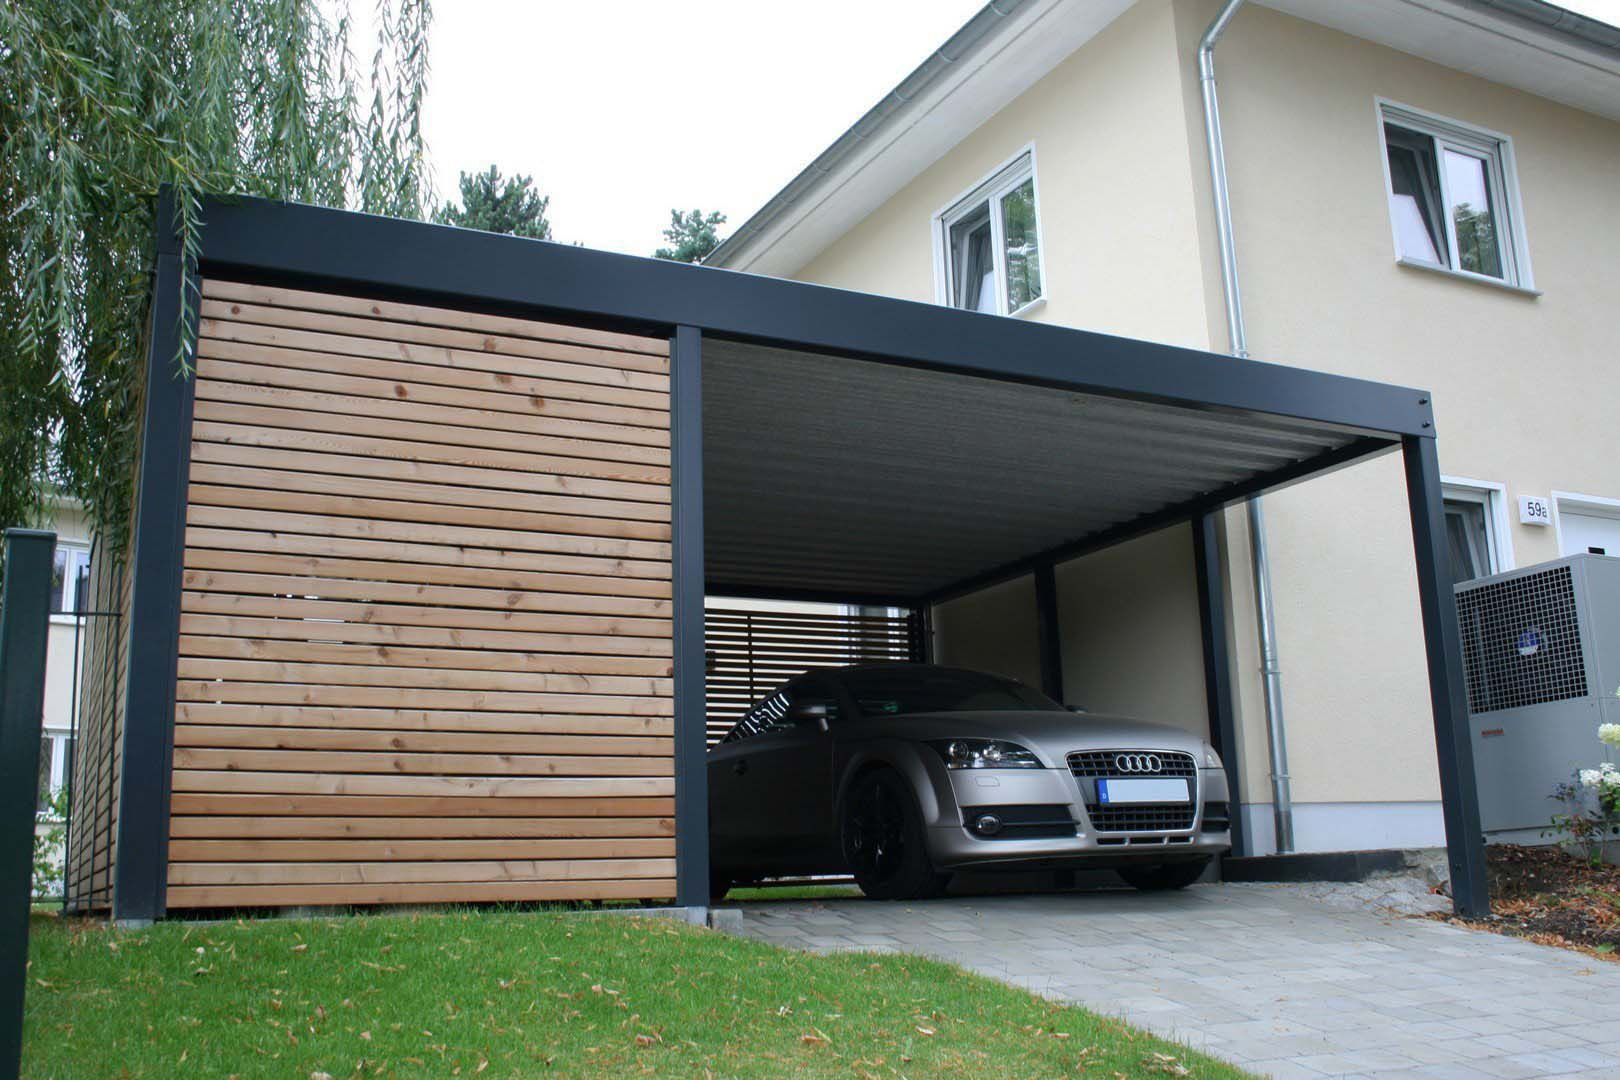 design metall carport aus holz stahl mit ger teraum individuell stuttgart deutschland carport. Black Bedroom Furniture Sets. Home Design Ideas